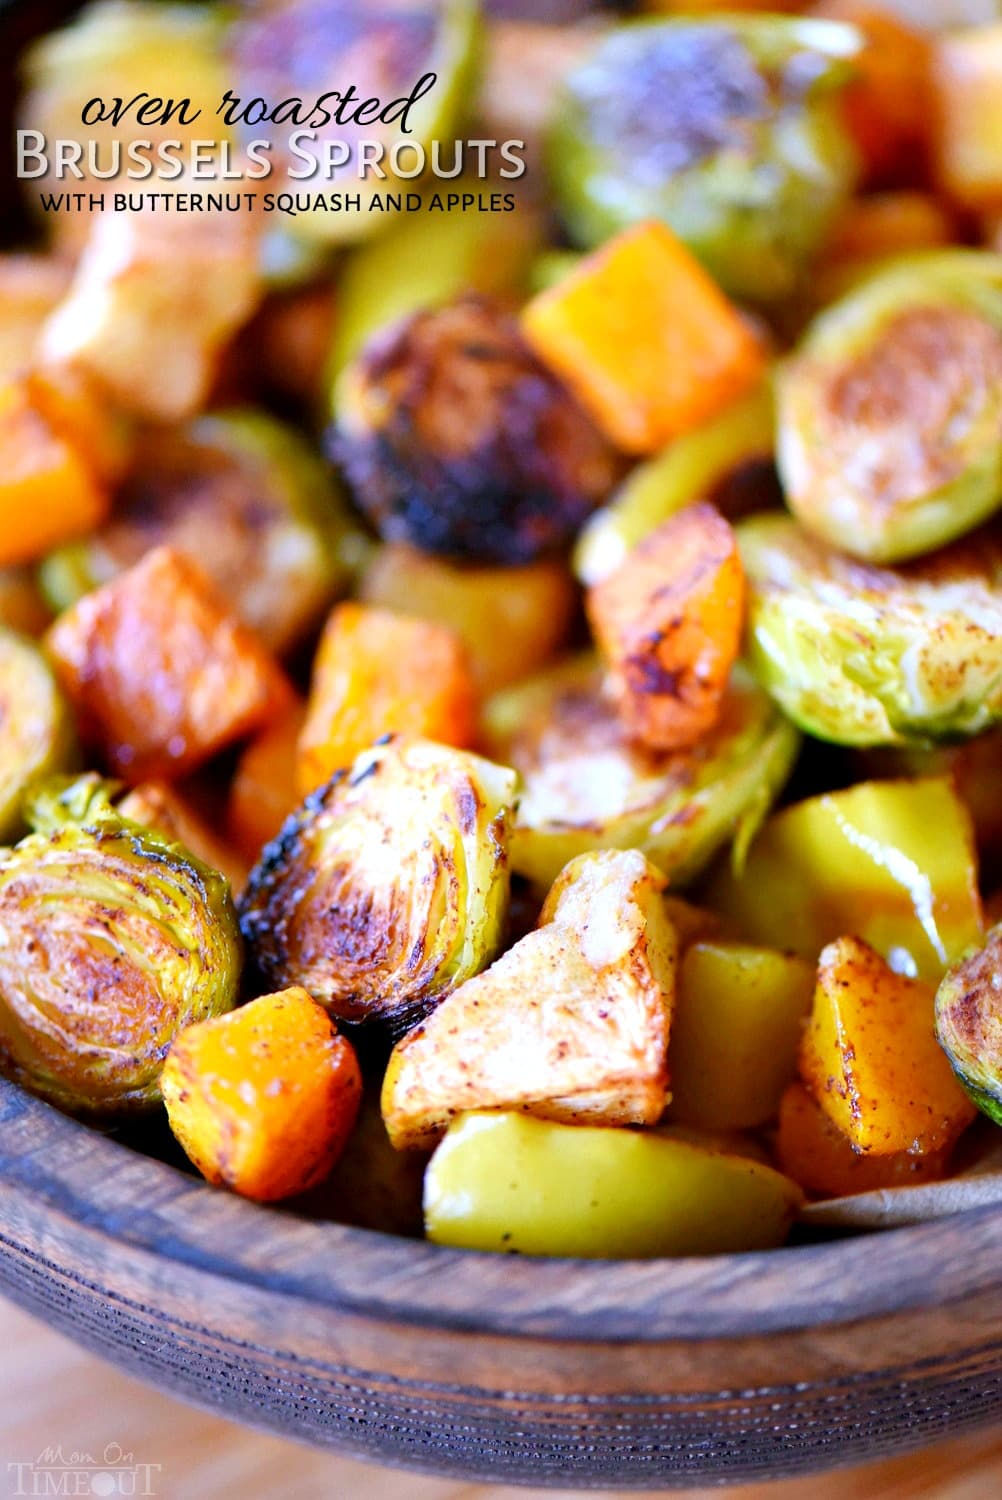 Oven Roasted Brussels Sprouts with Butternut Squash and Apples